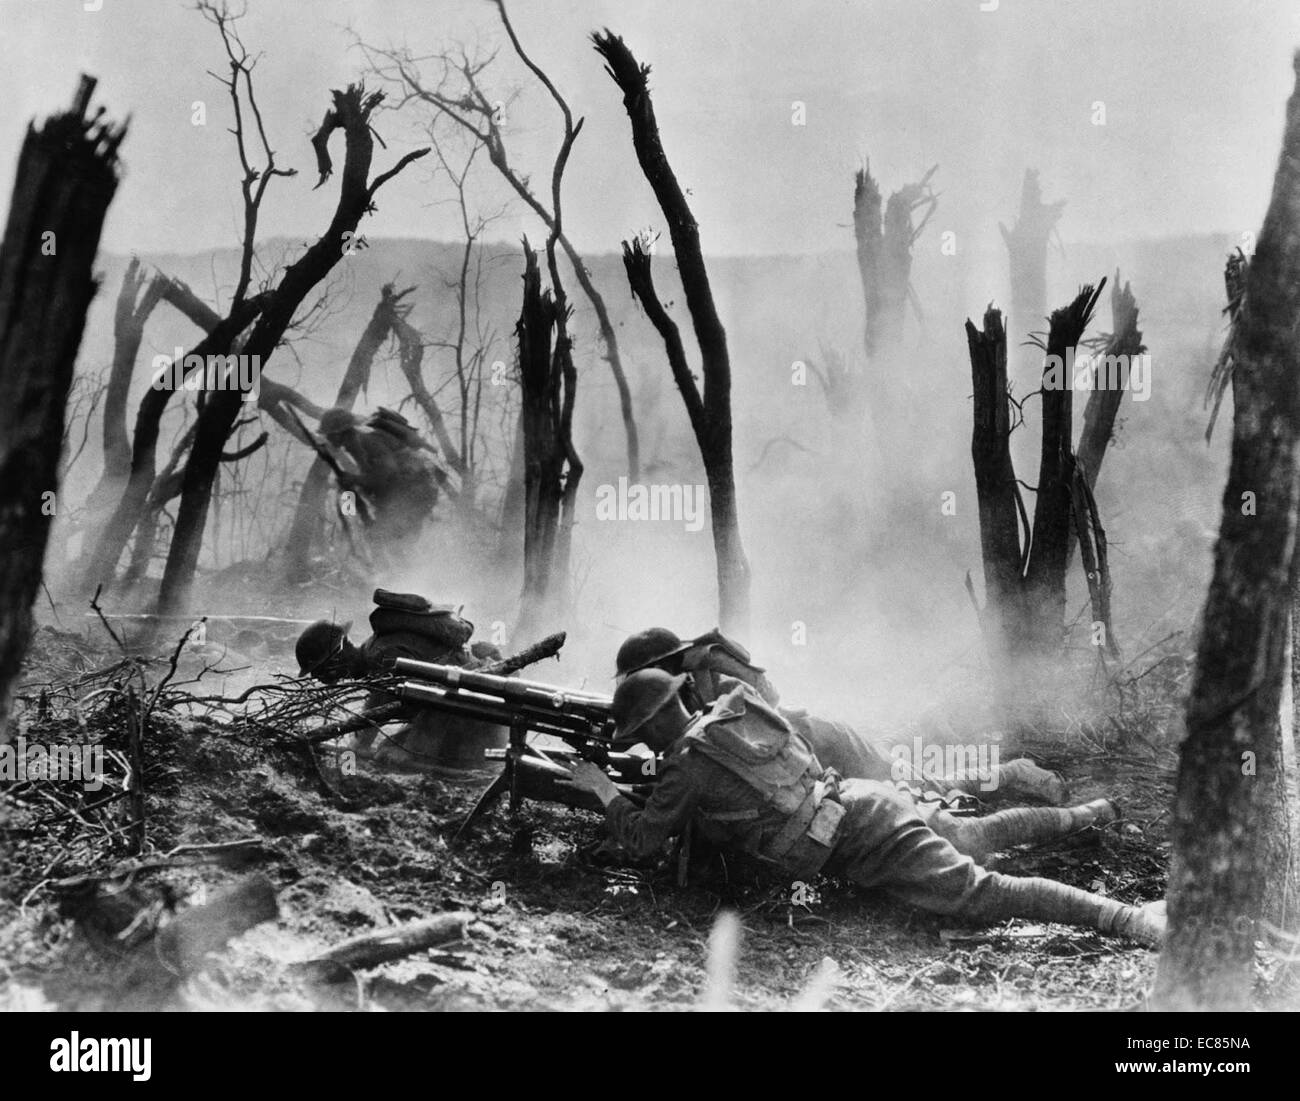 Soldiers of the 23rd Infantry on the Western Front 1915. - Stock Image